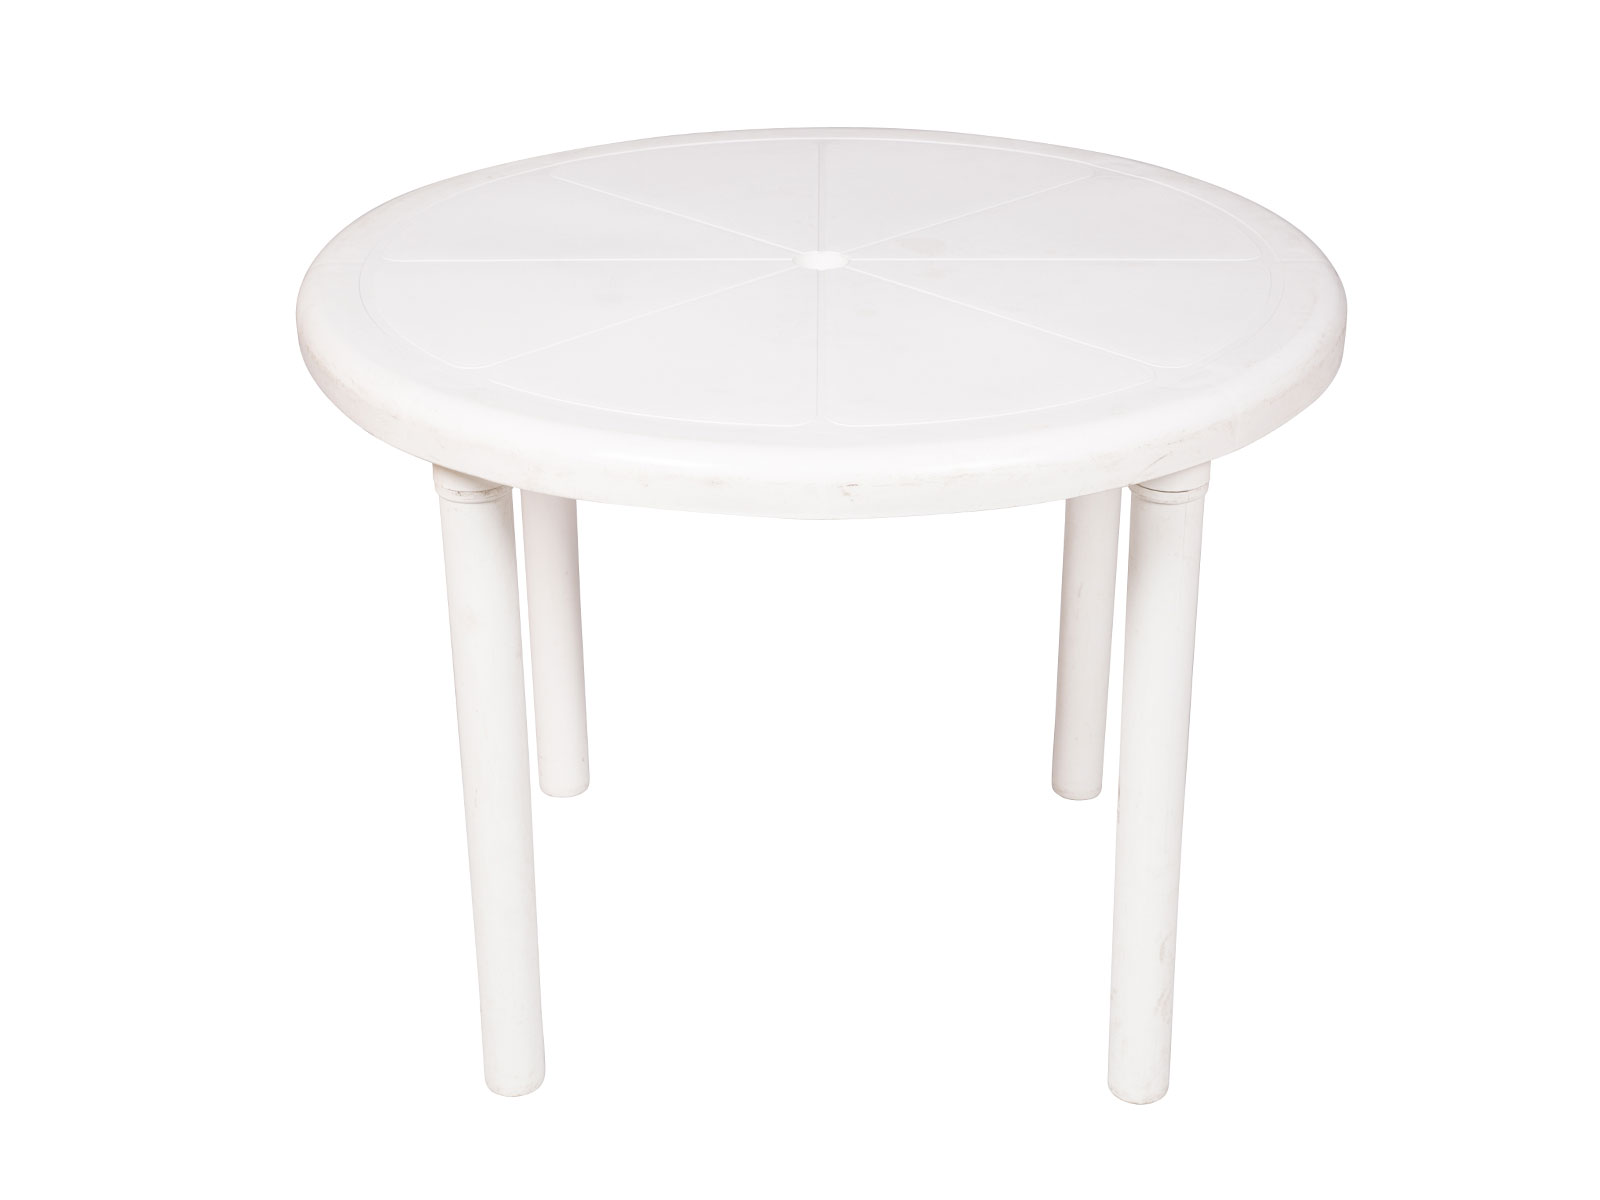 Round Table w. Legs – White Plastic